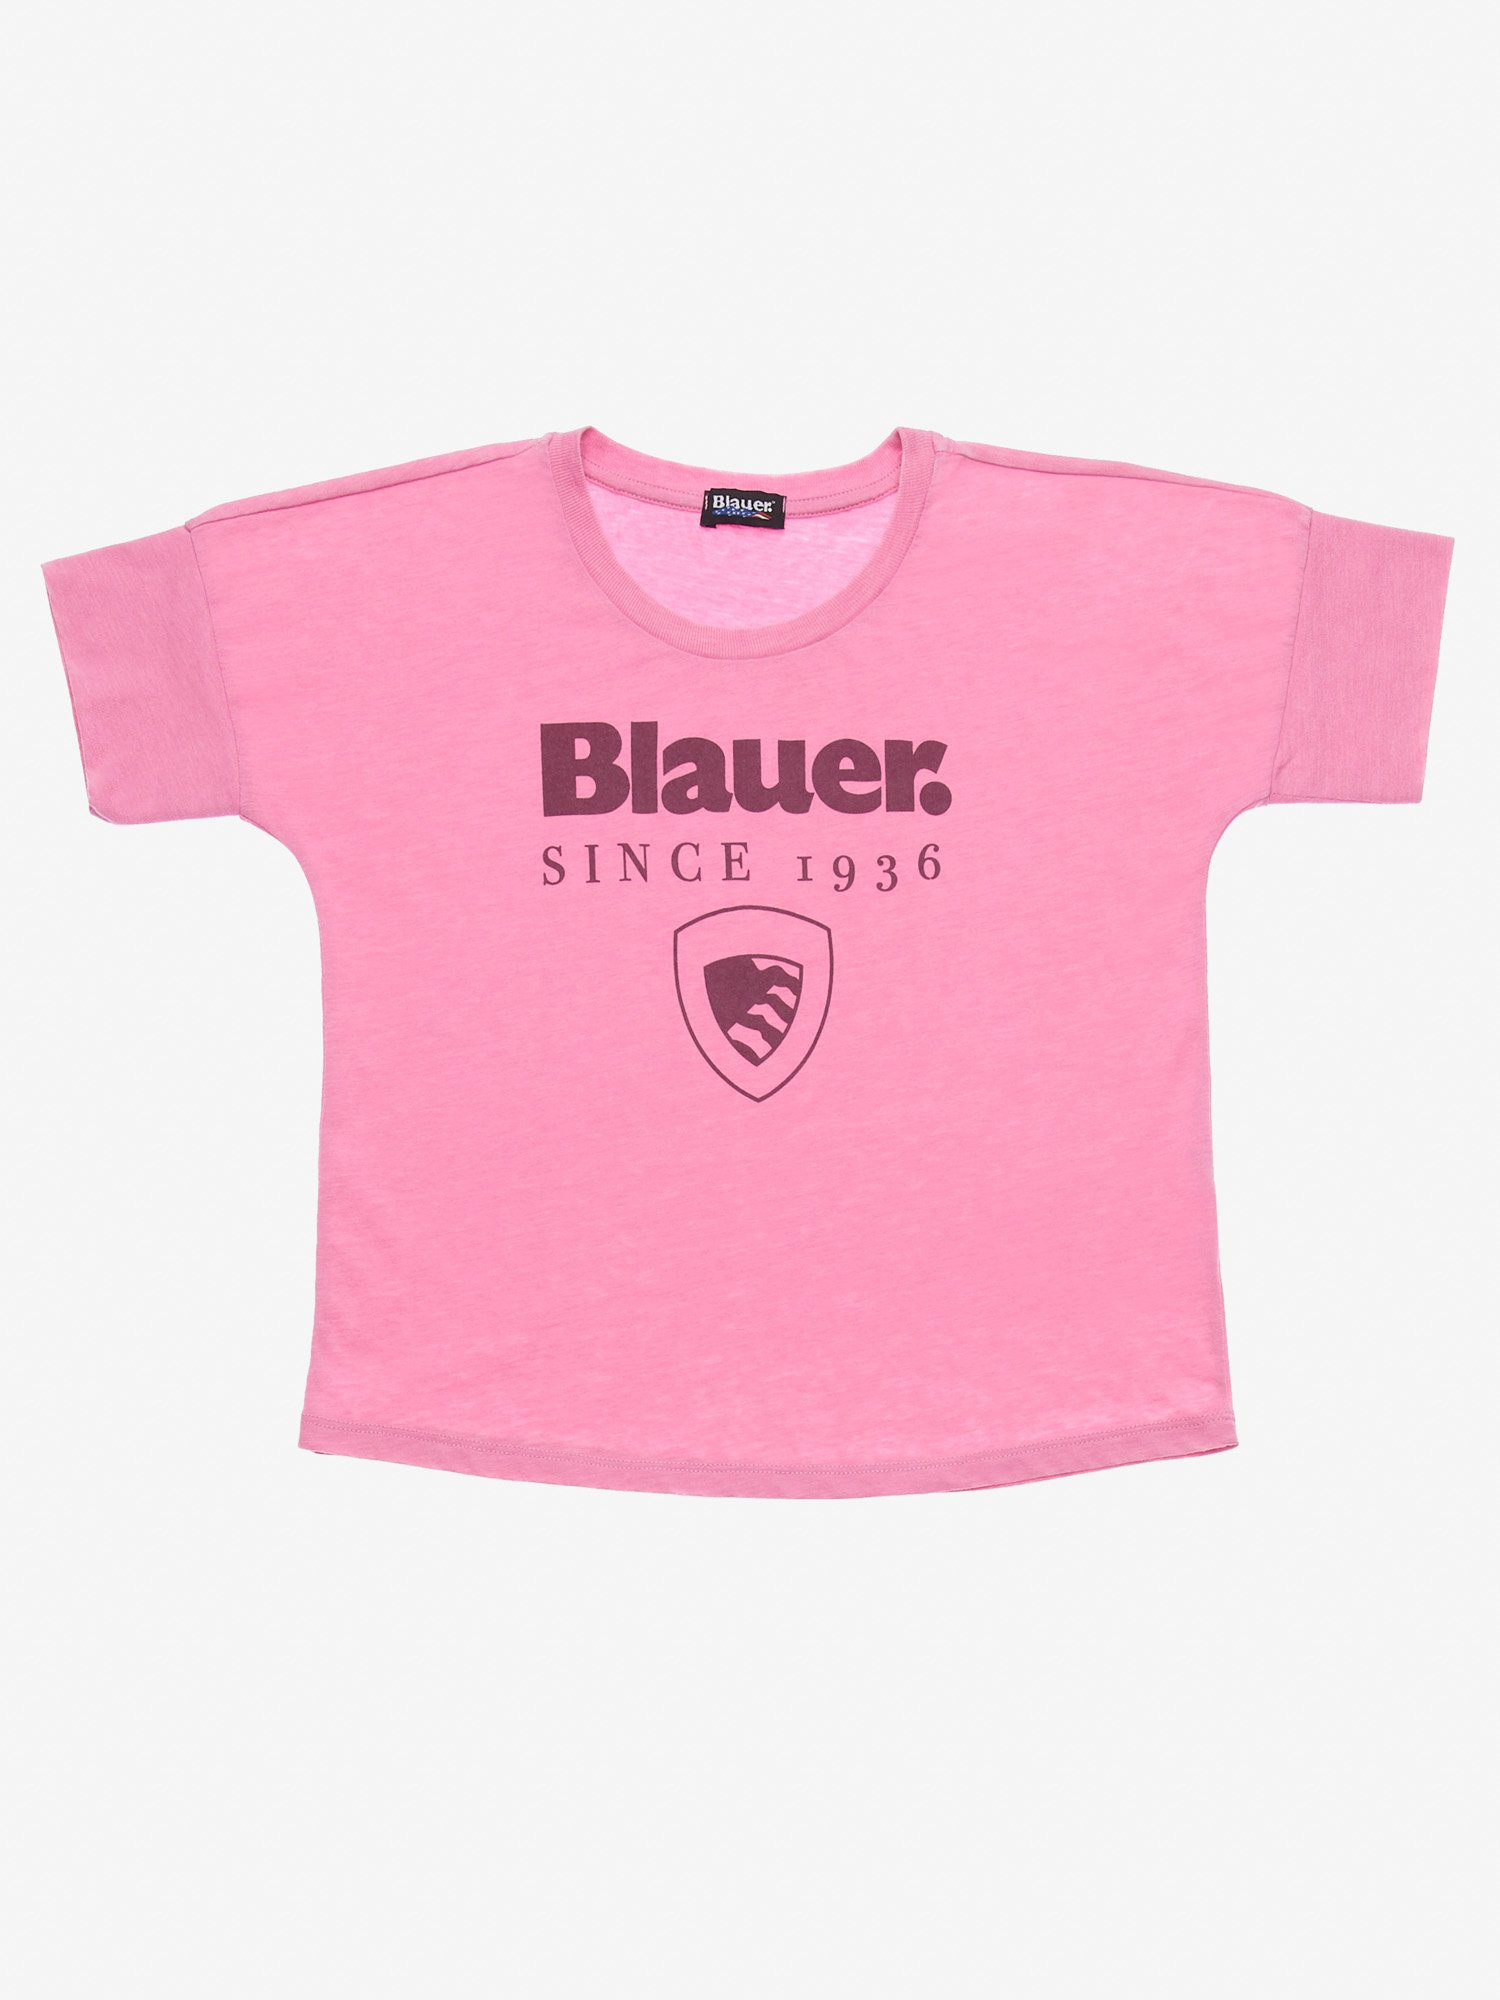 T-SHIRT JUNIOR TANZ - Blauer